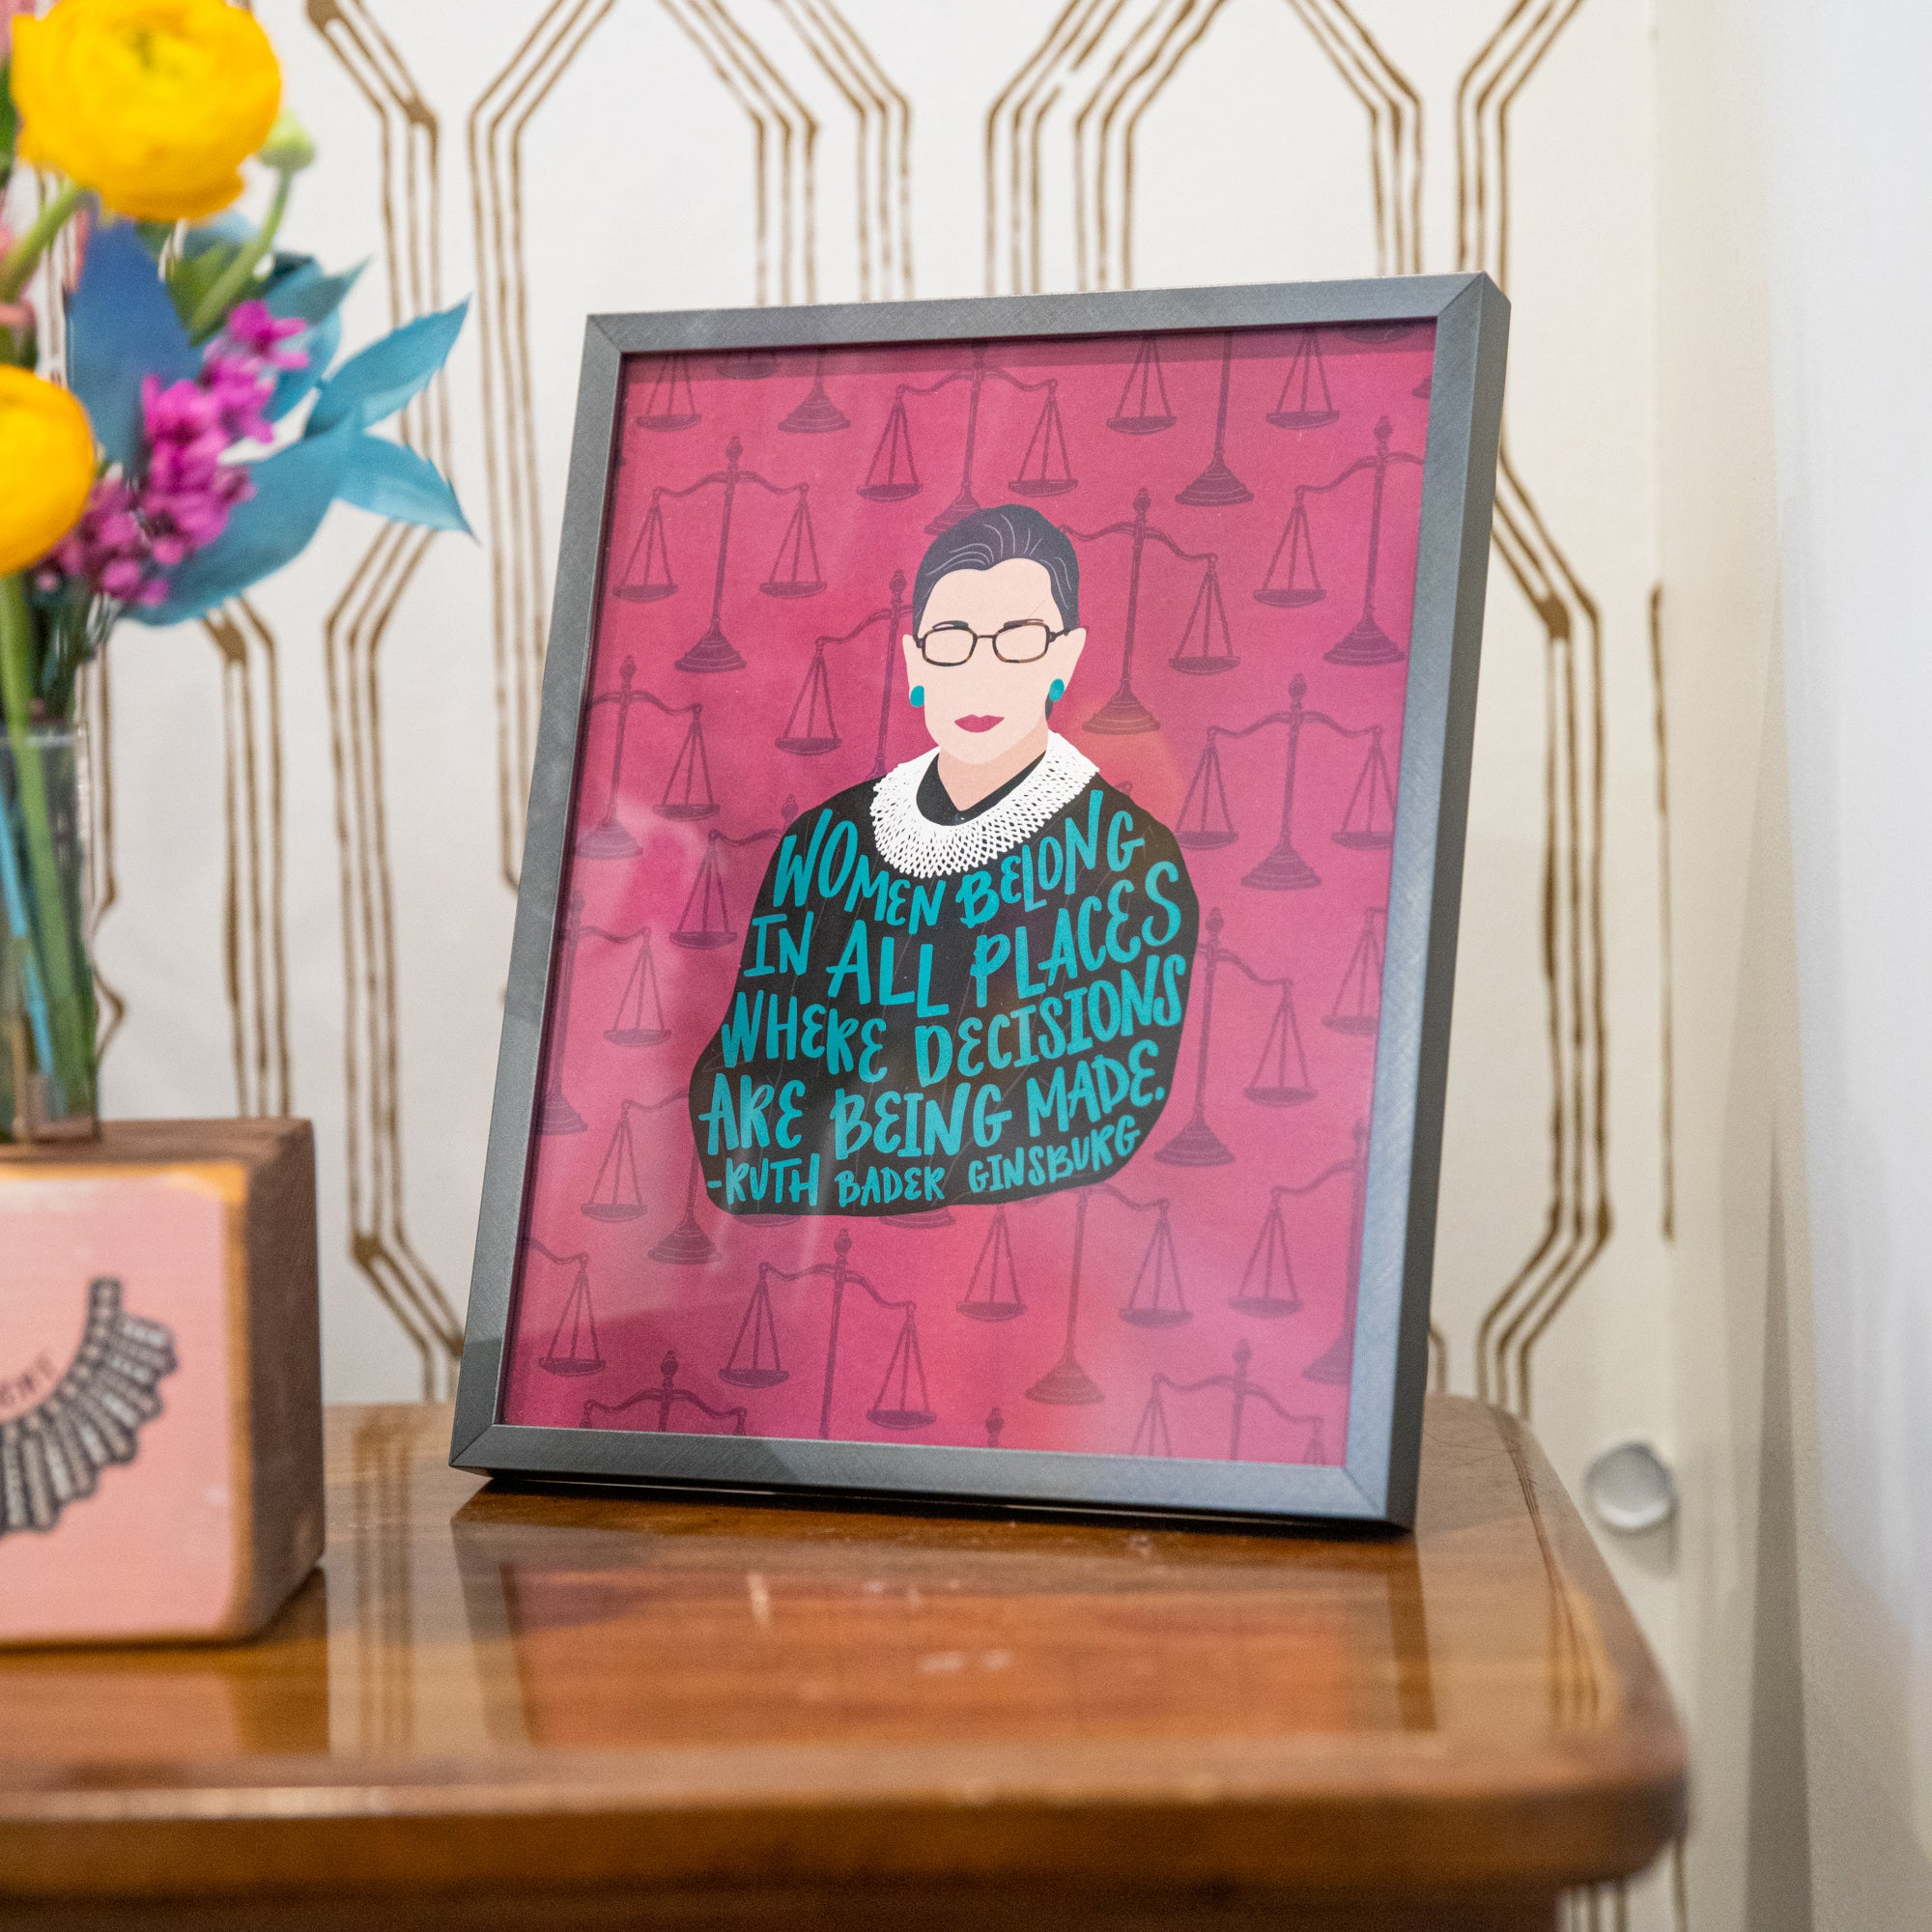 Ruth Bader Ginsburg women belong in all places where decisions are being made illustration 8x10 art print on side table